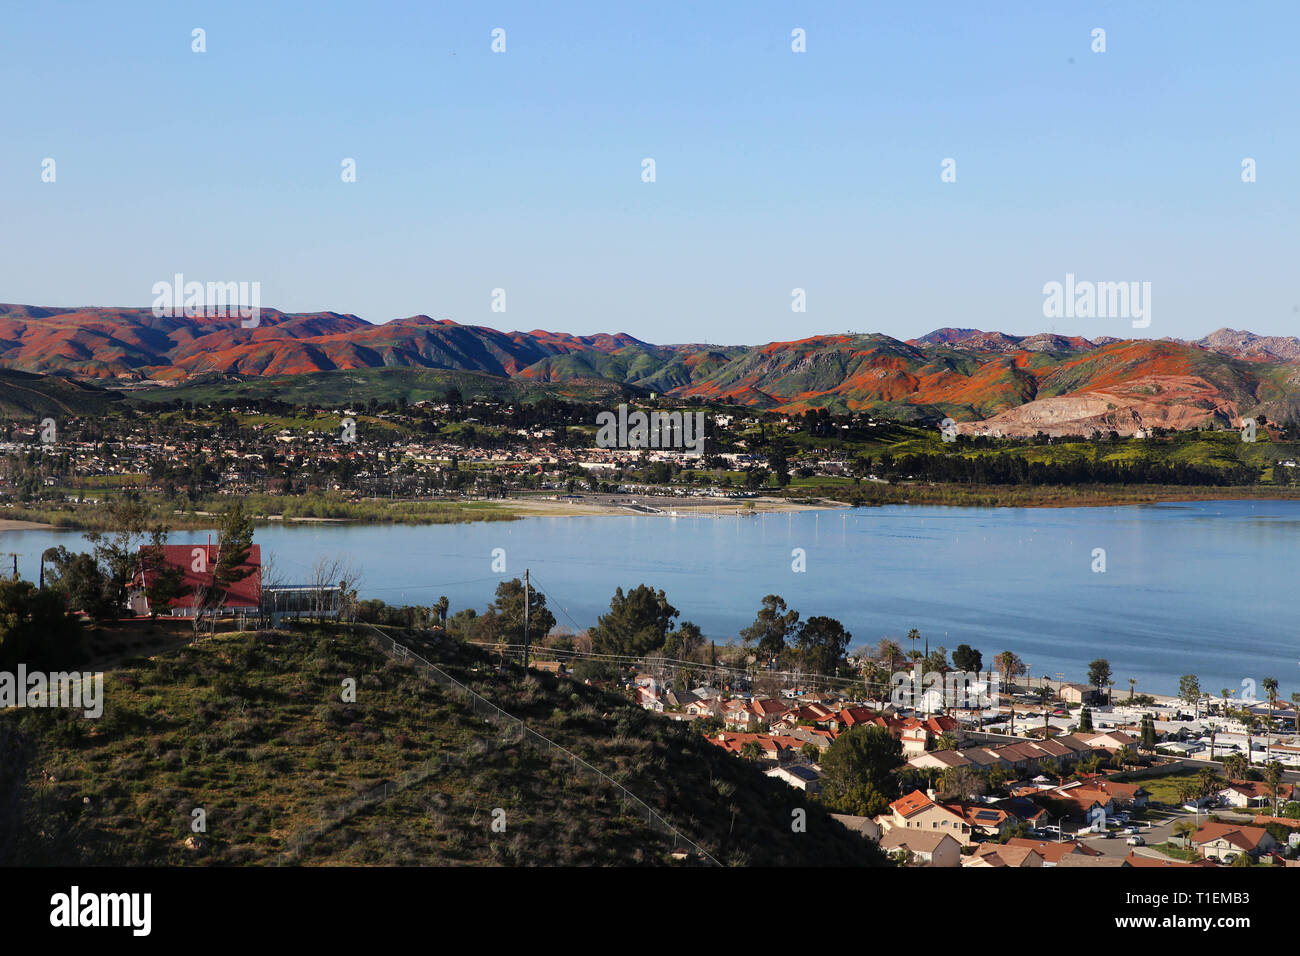 Lake Elsinore, California, USA. 16th Mar, 2019. This spring, the conditions after last year's devastating wildfires in southern California and some unusually heavy rainfall have created the perfect storm for a wild flower super bloom. The Walker Canyon poppy bloom is so vibrant, it can be seen from Los Angeles International Airport flights 30,000 feet up in the air - it even makes an appearance in satellite photos. Credit: Katrina Kochneva/ZUMA Wire/Alamy Live News - Stock Image